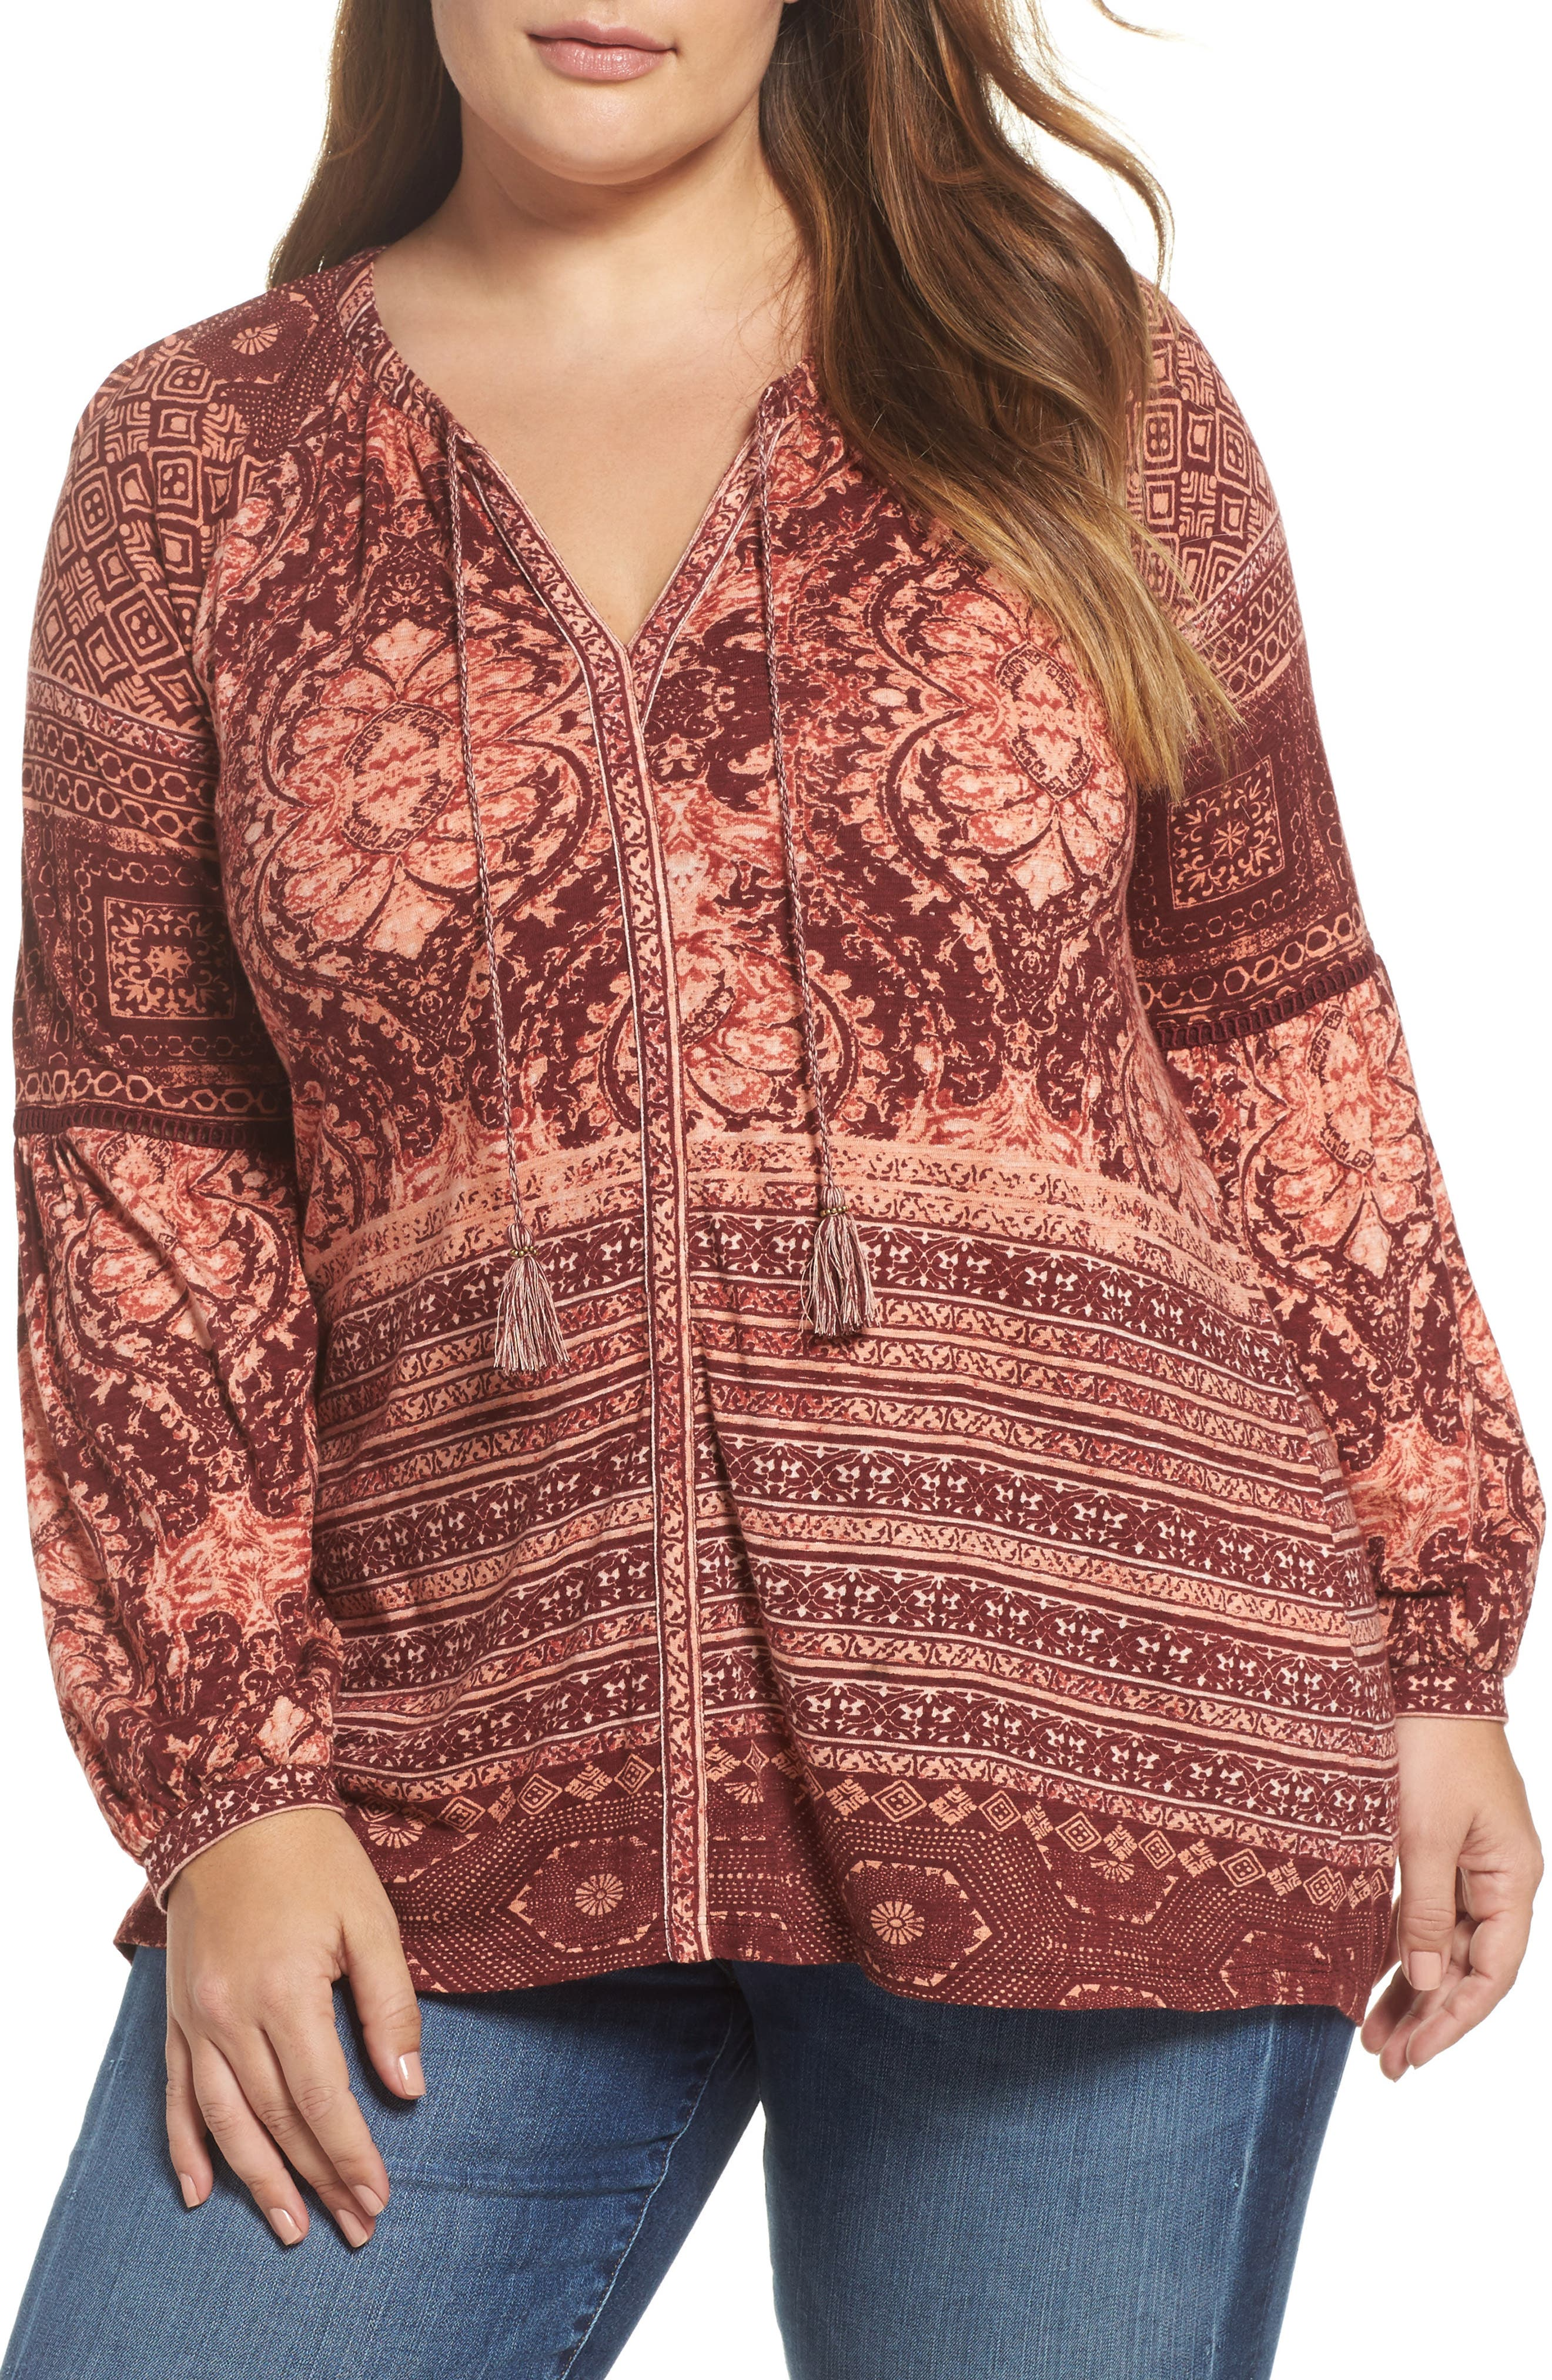 Lucky Brand Mixed Print Top (Plus Size)